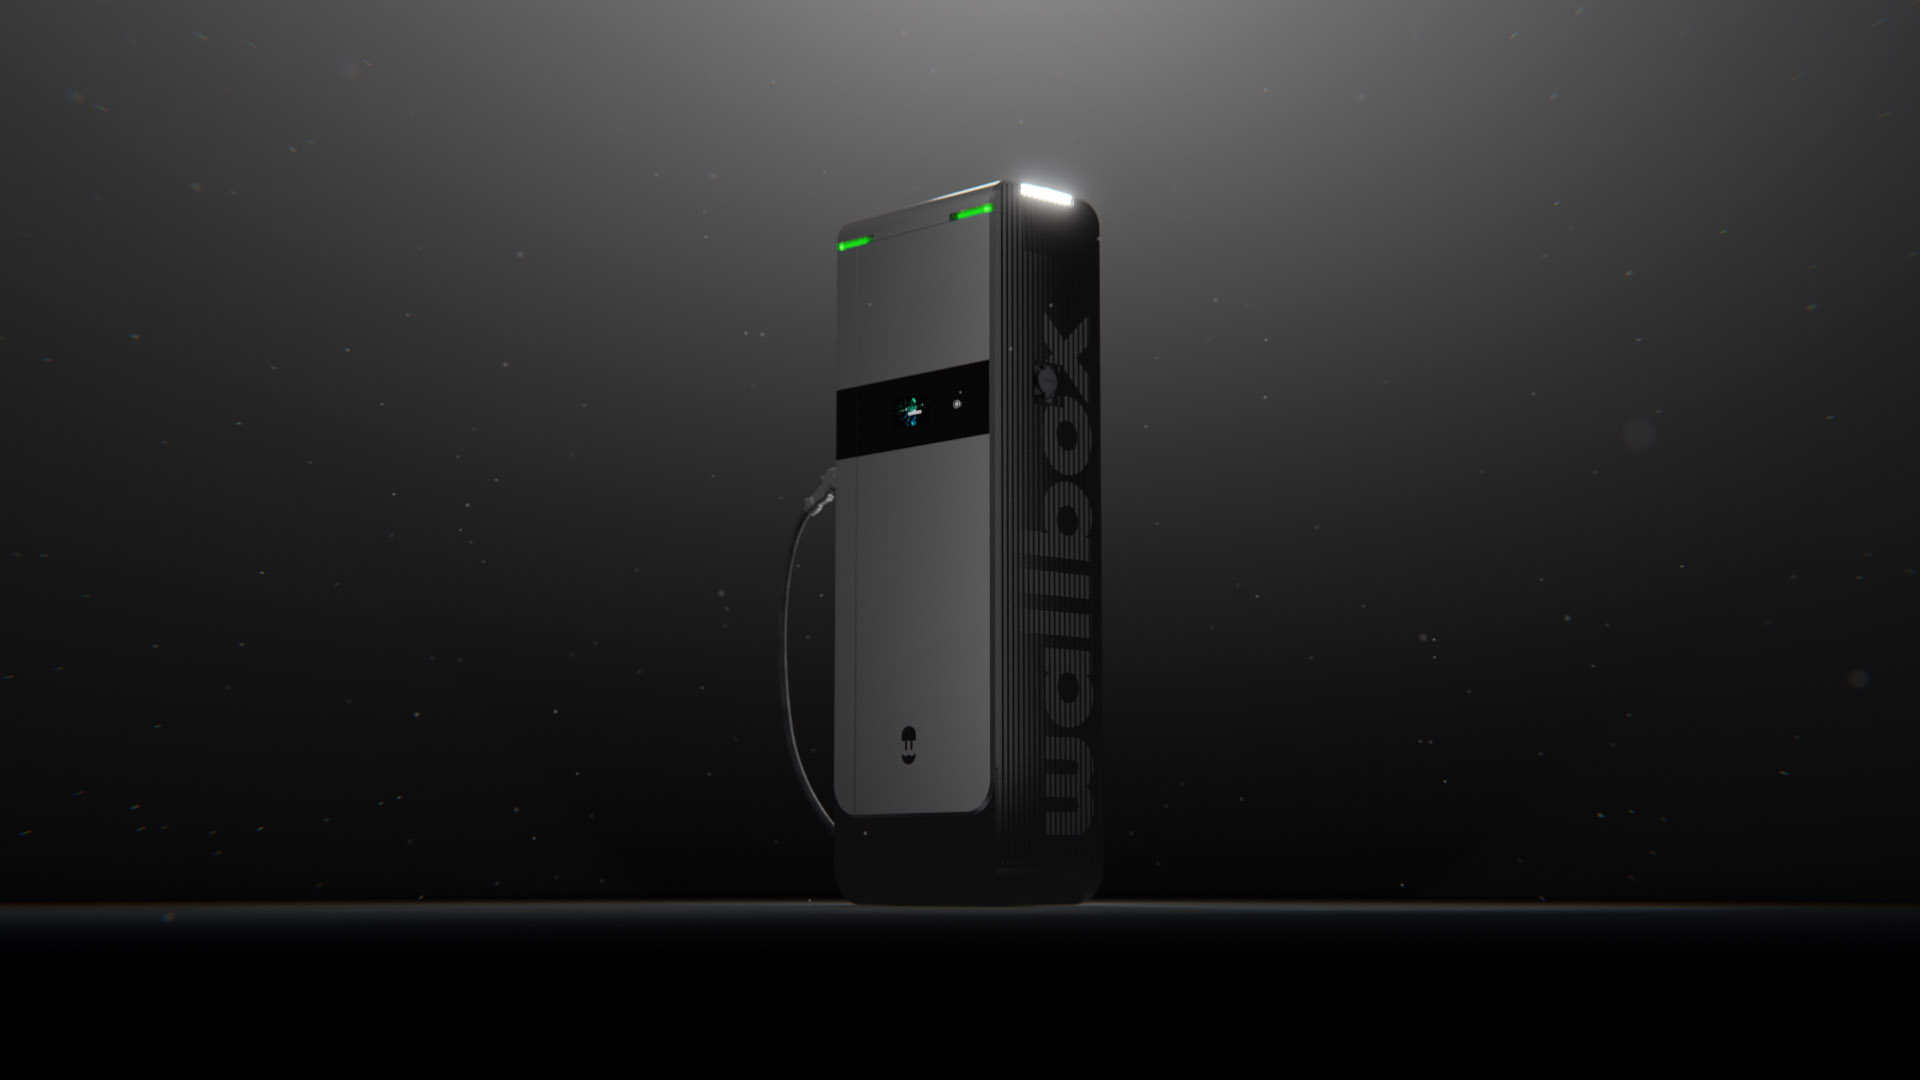 Wallbox announces Supernova, a next generation fast public charger that offers greater efficiency and higher performance at half the cost